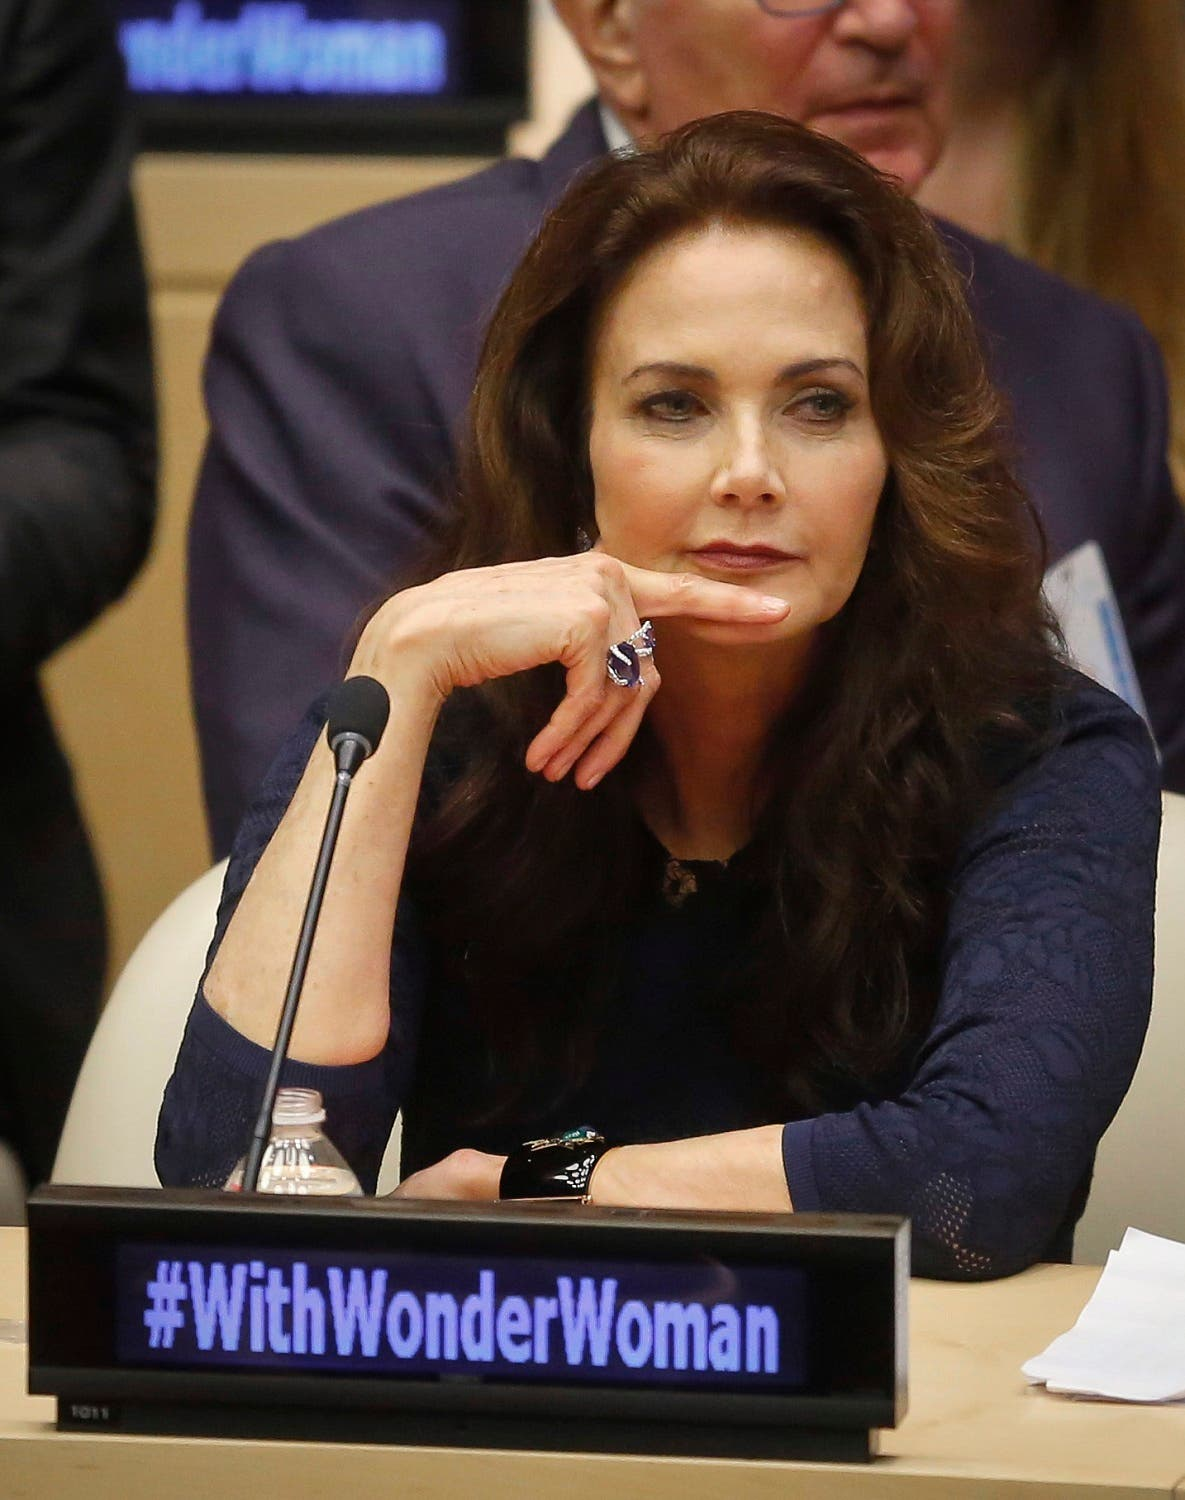 """Lynda Carter, who played Wonder Woman on television, listens during a UN meeting to designate Wonder Woman as an """"Honorary Ambassador for the Empowerment of Women and Girls,"""" (Photo: AP/Bebeto Matthews)"""